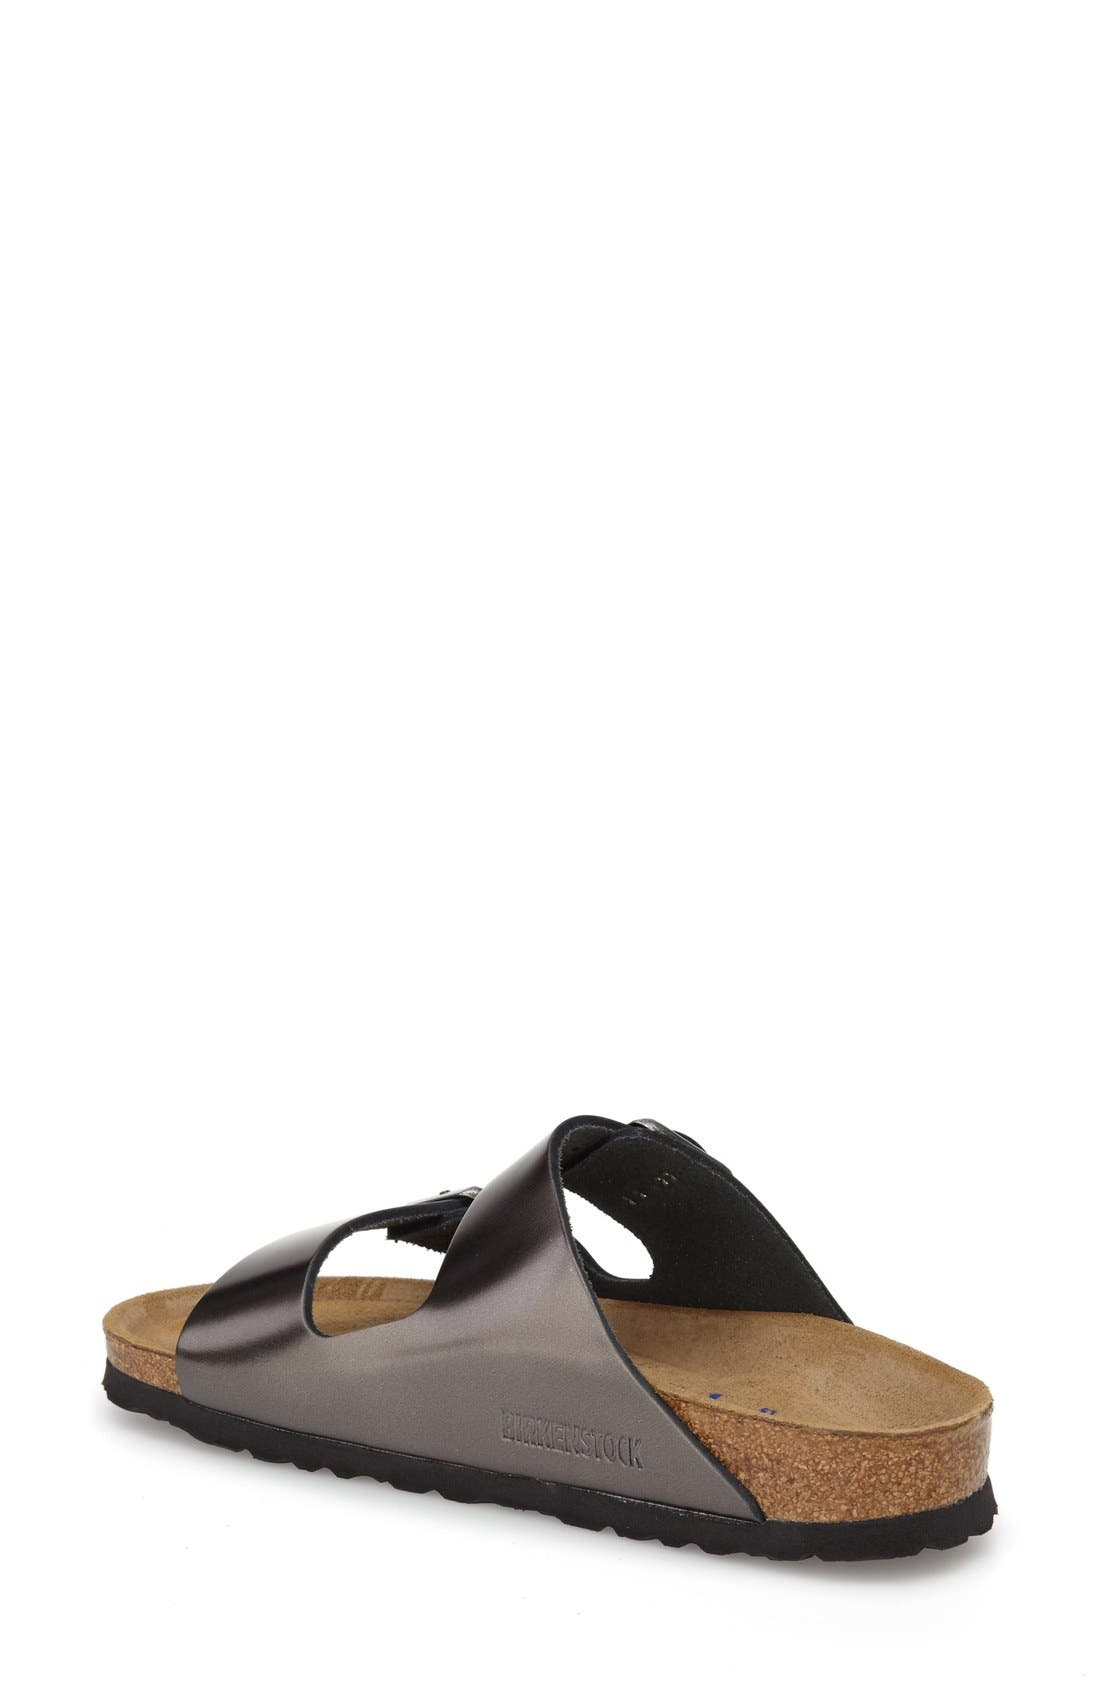 'Arizona' Soft Footbed Sandal,                             Alternate thumbnail 2, color,                             Metallic Anthracite Leather